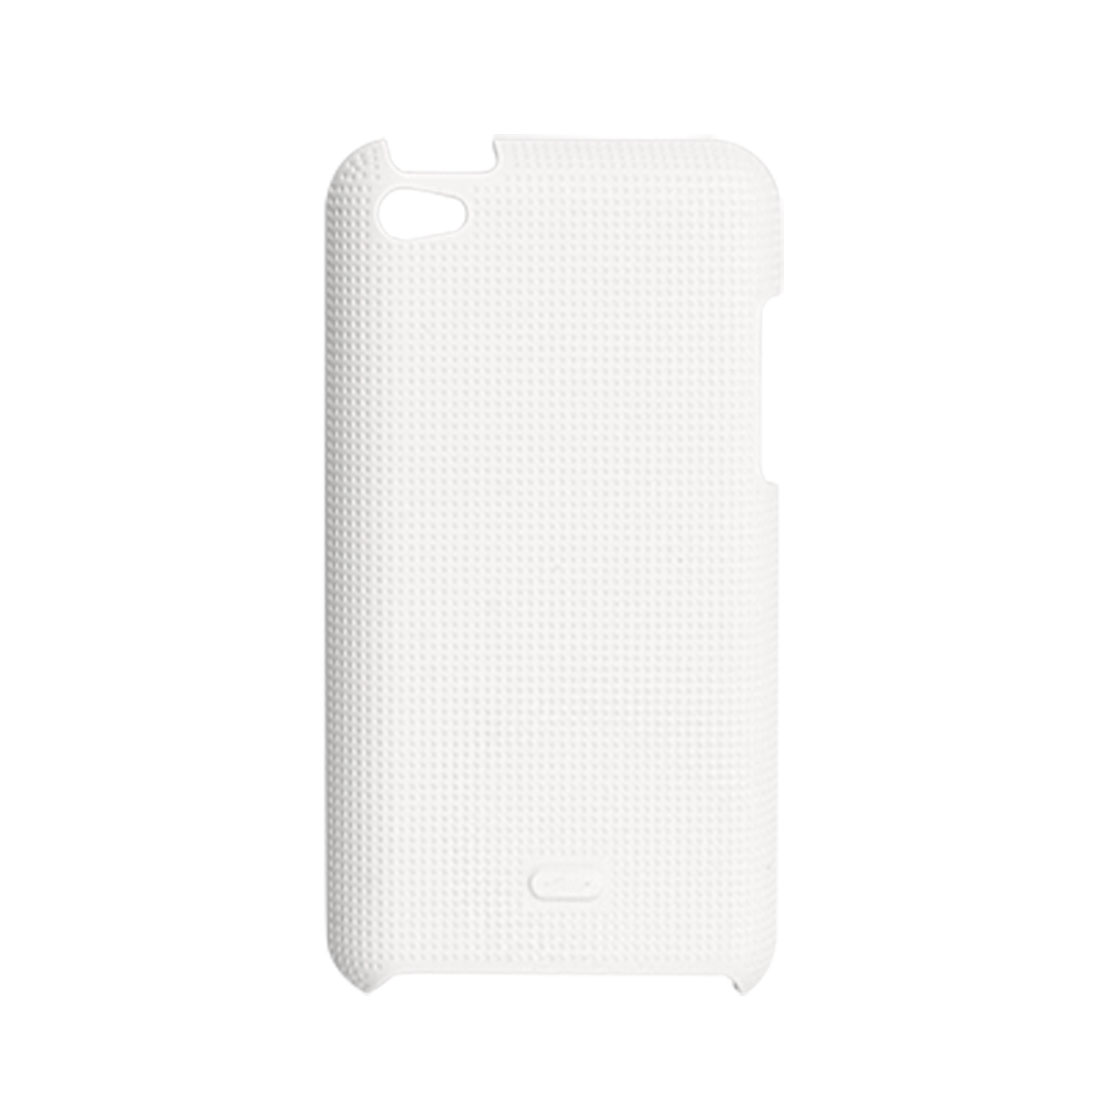 White Antislip Back Case Protector for iPod Touch 4G